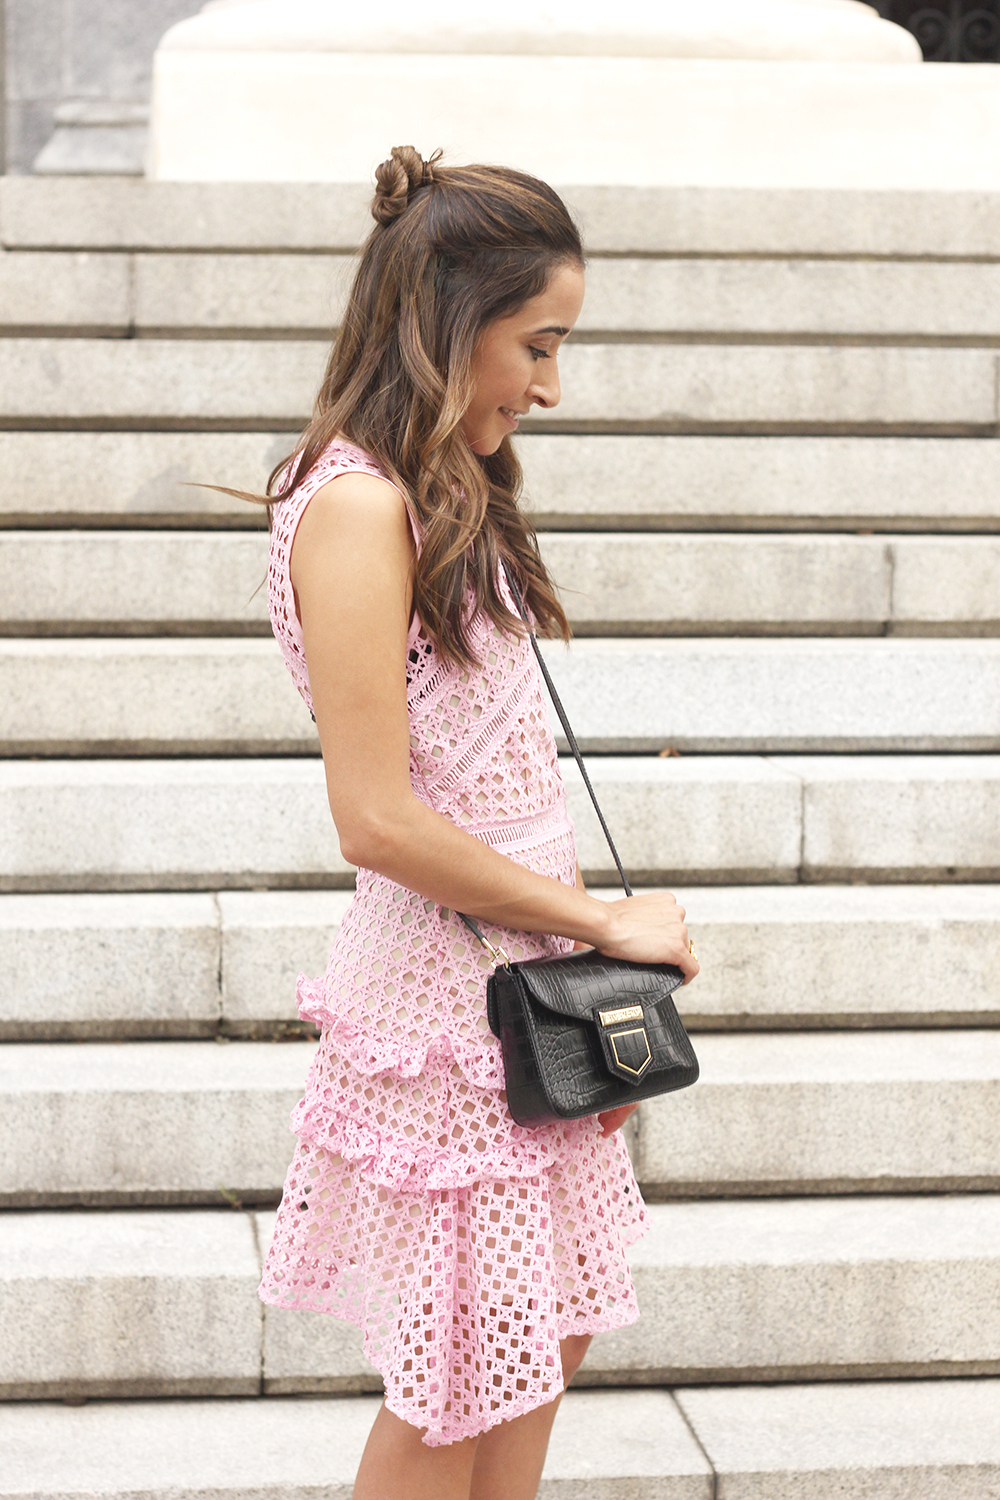 Pink dress summer givenchy bag nude heels outfit girl style12